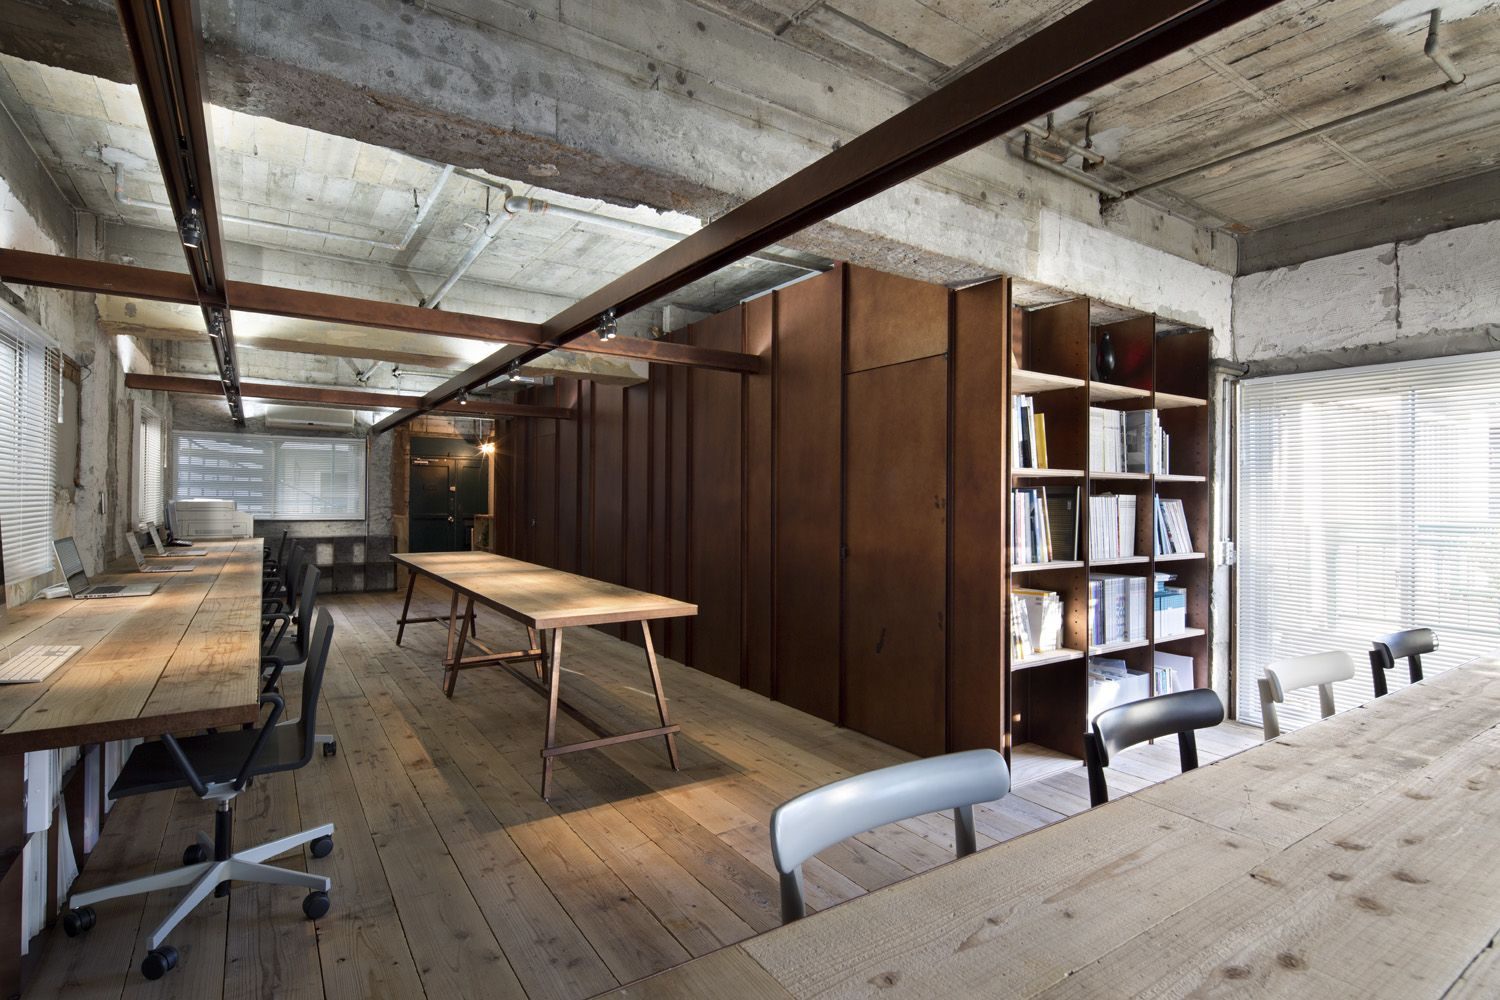 suppose design office toshiyuki. Suppose Tokyo Office Is A Minimalist Interior Located In Tokyo, Japan, Designed By Design Office. The Space Comprised Of Industrialized Materials Toshiyuki O